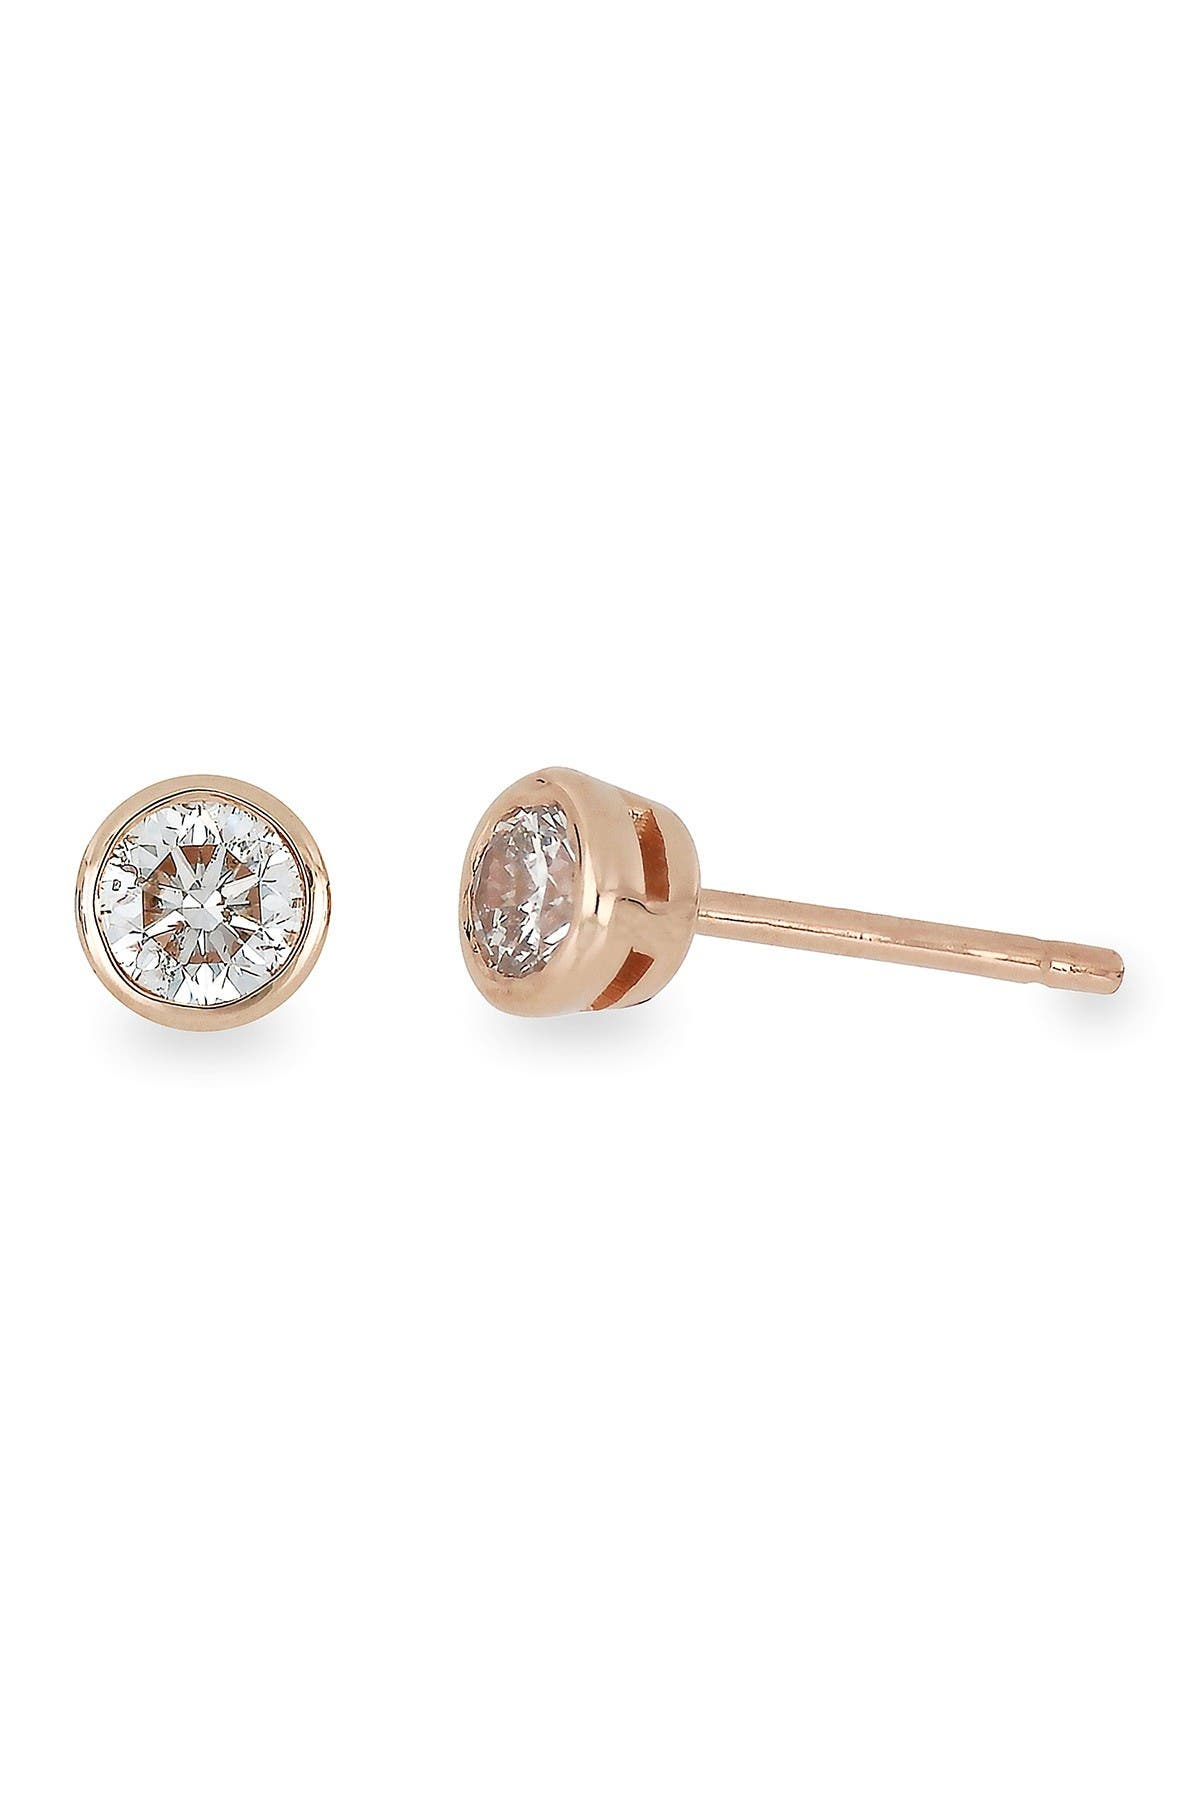 Image of Bony Levy 14K Rose Gold Bezel Set Diamond Stud Earrings - 1.00 ctw